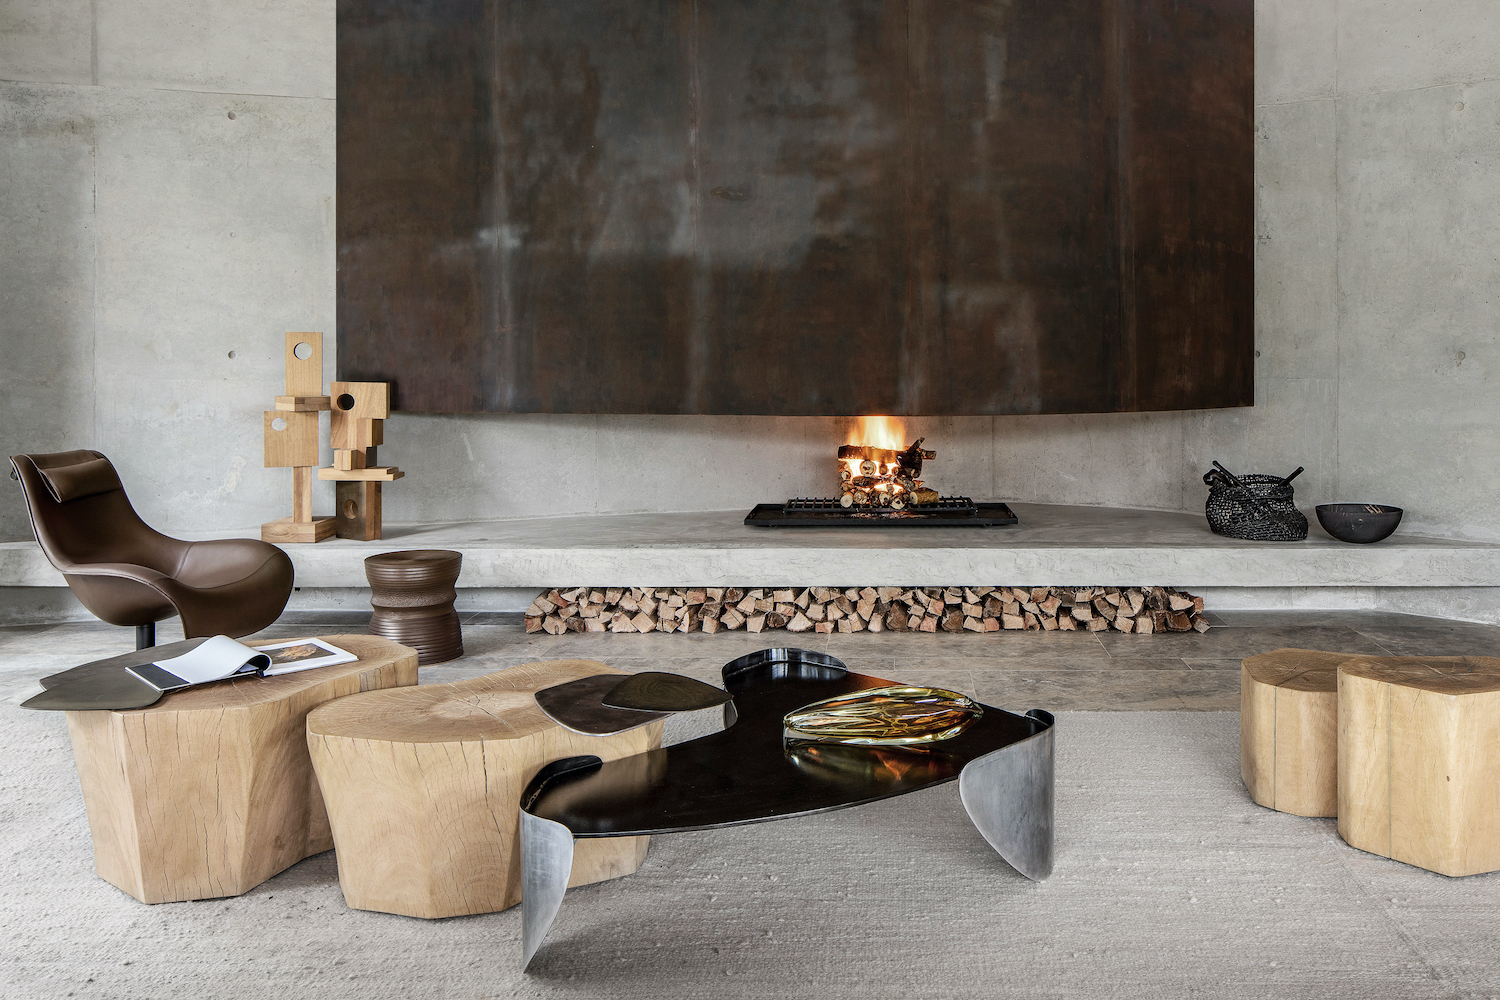 laguna coffee table in a cozy living room with fireplace